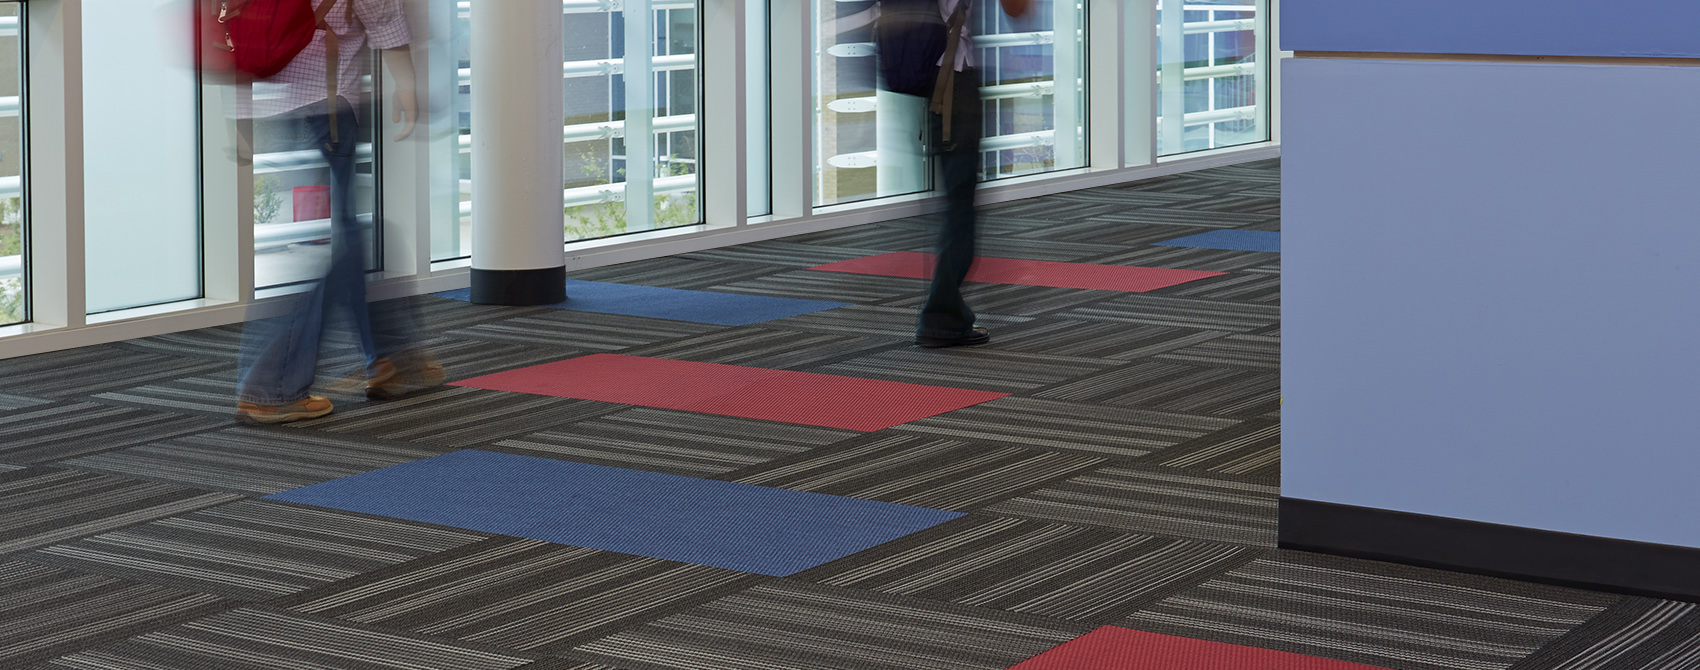 Carpet Tiles Ideas And Inspiration Cornerstone Commercial Flooring